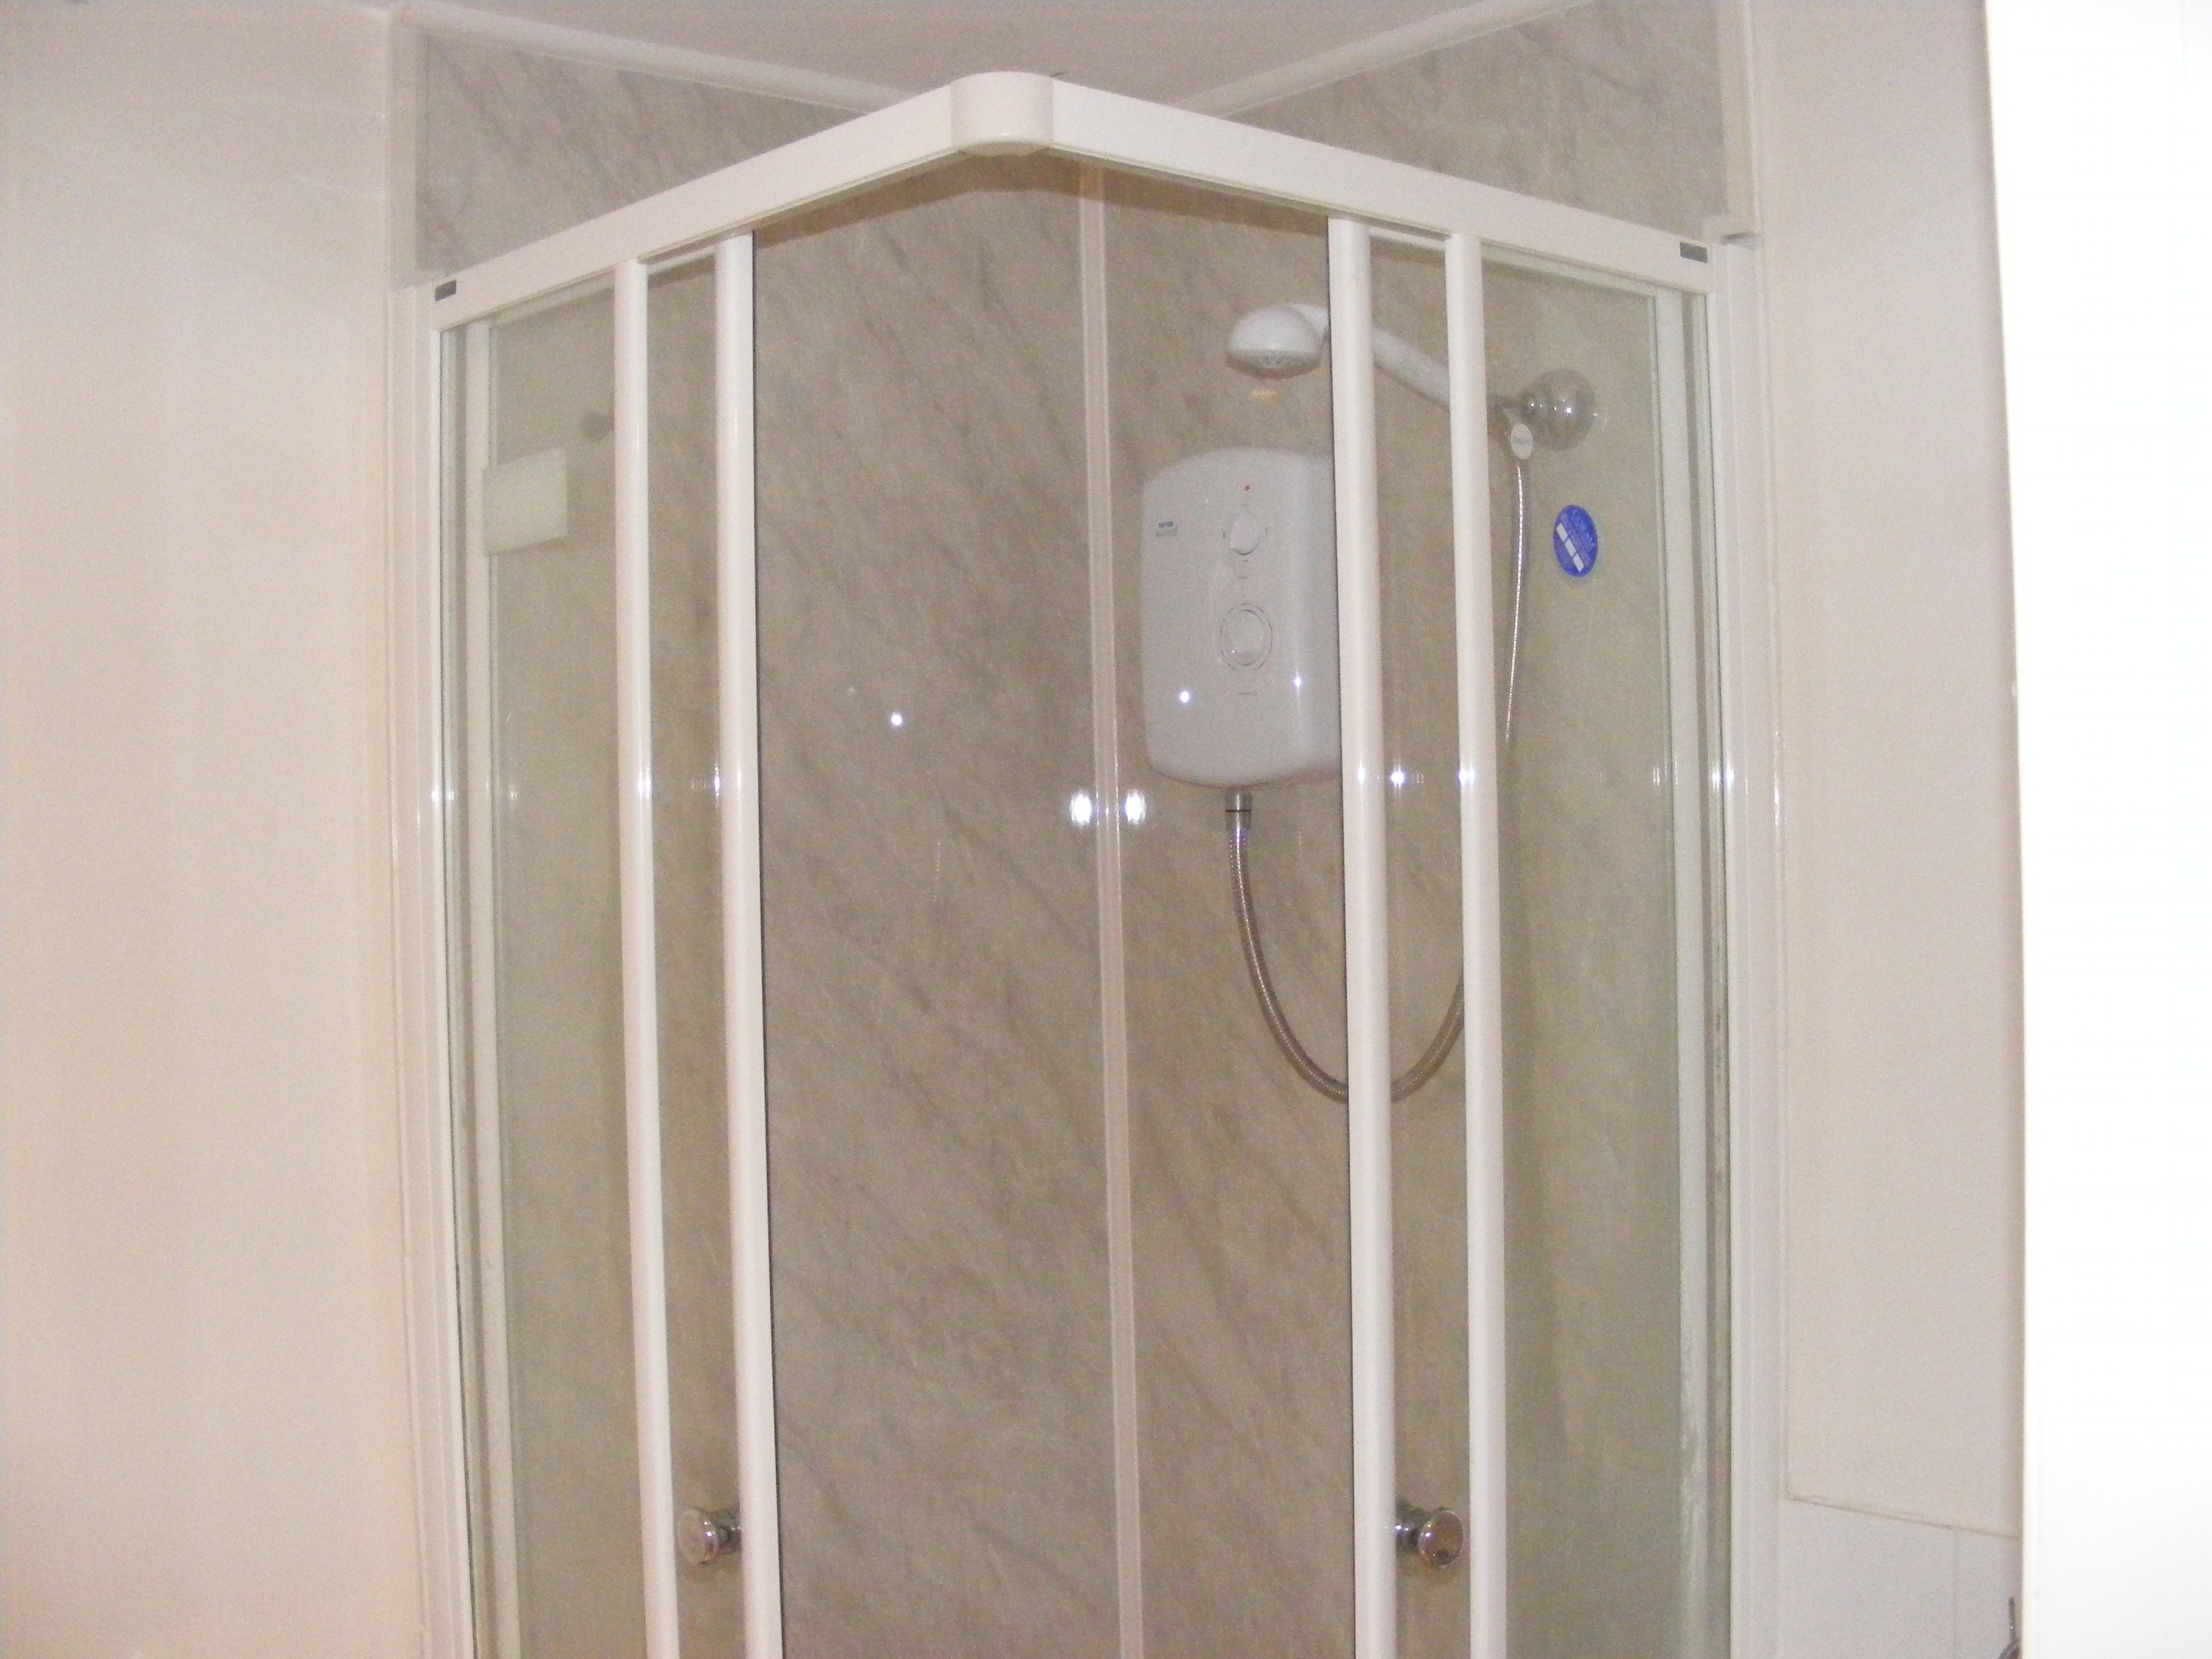 Getting Rid Of Shower Grime And Pesky Pigeons A Practical Guide - Aquaboard shower panels